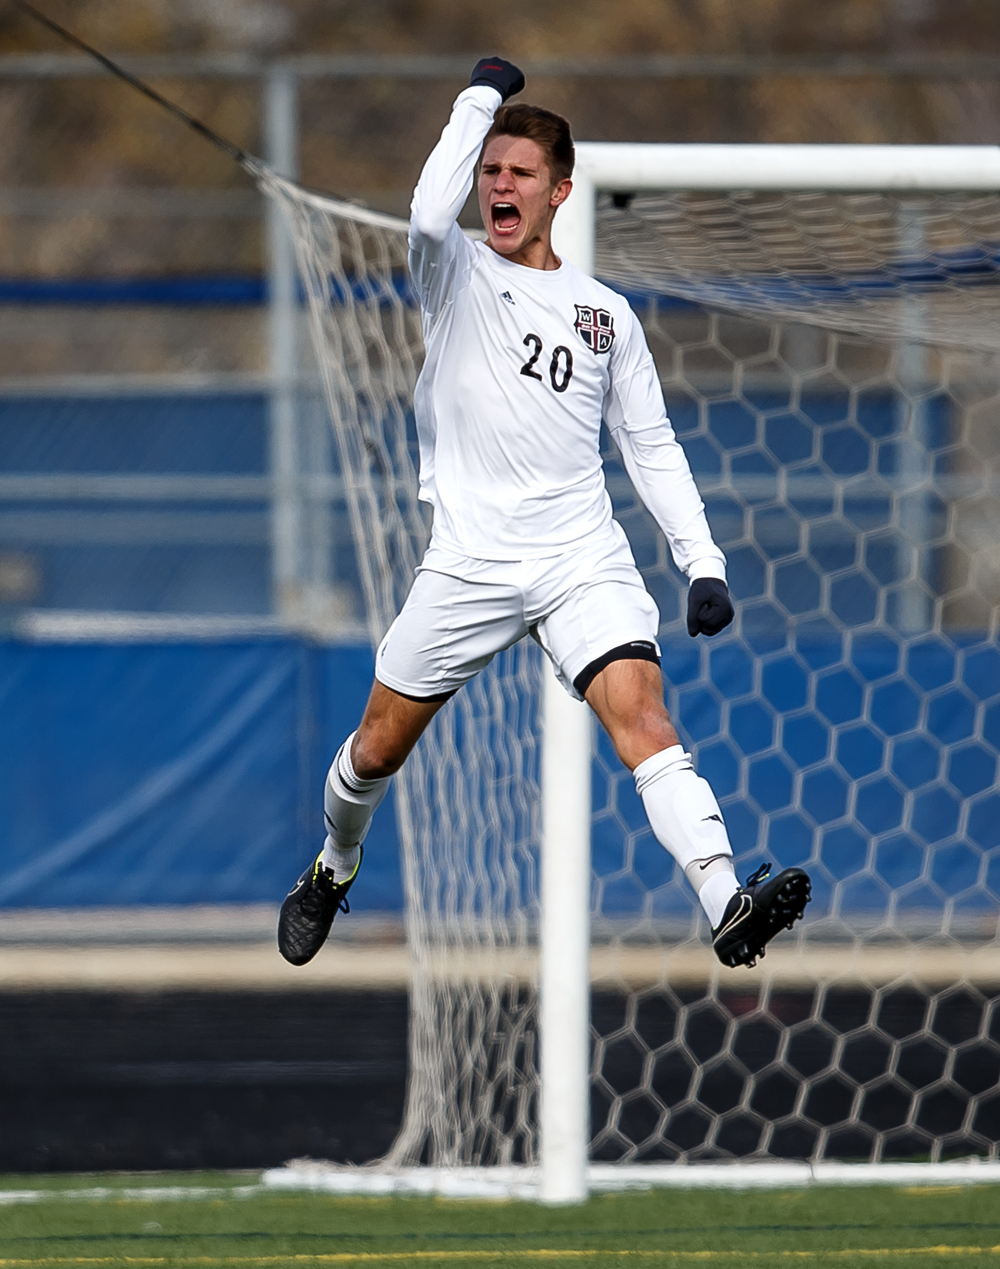 West Chicago Wheaton Academy's Ty Seager (20) celebrates his goal to make it 1-0 against Springfield in the first half during the IHSA Class 2A Soccer State Final Tournament semifinals at Hoffman Estates High School, Friday, Nov. 7, 2014, in Hoffman Estates, Ill. Justin L. Fowler/The State Journal-Register